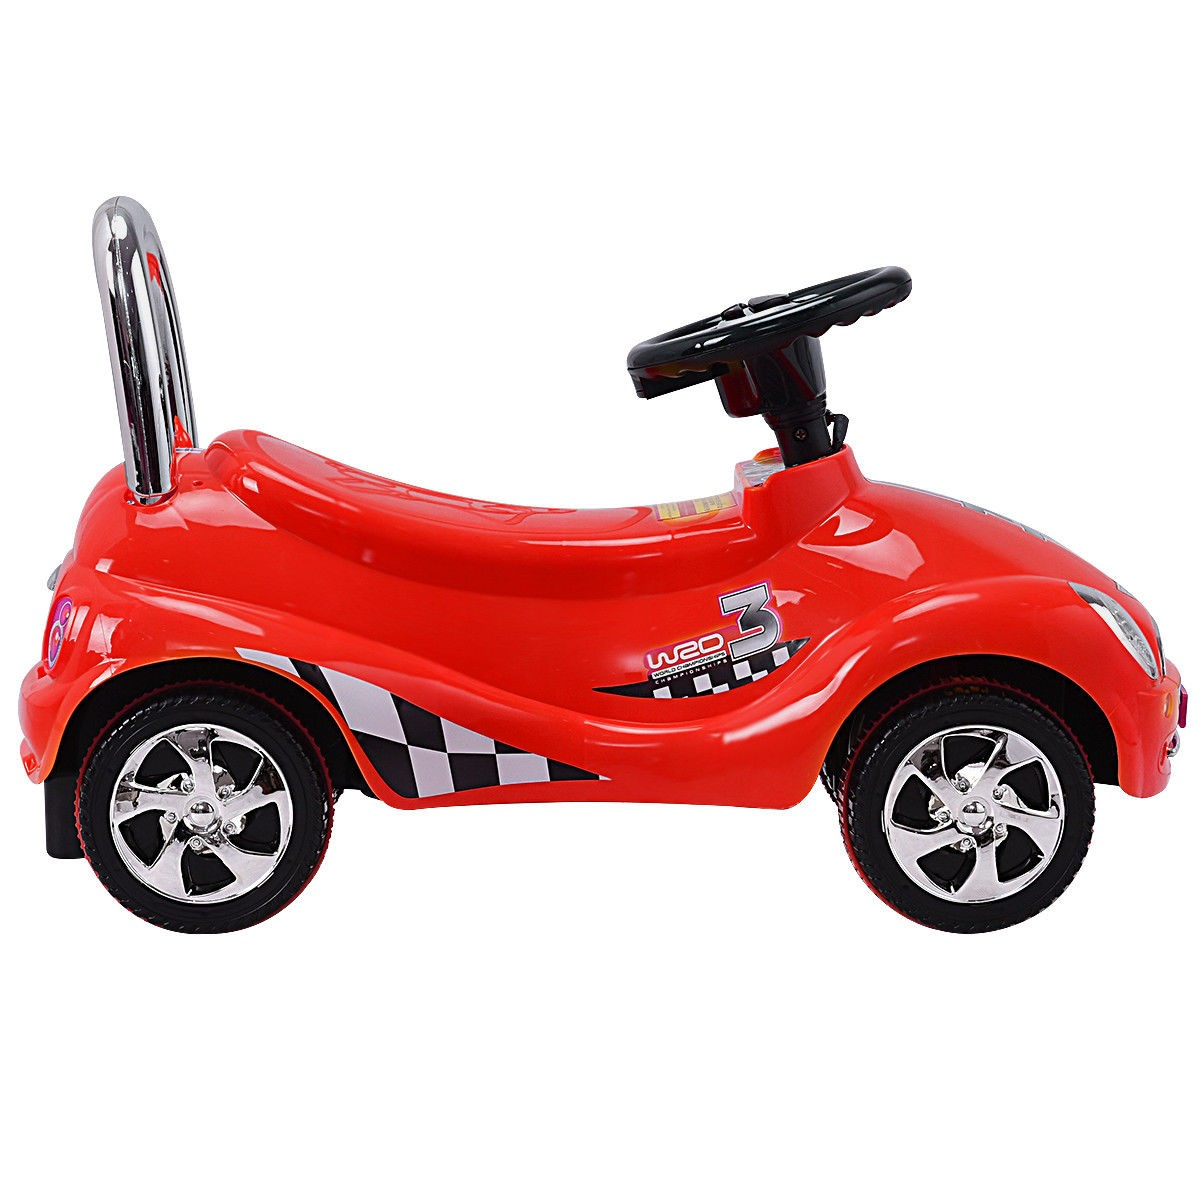 New Children 3-5 Years Old Riding Push Gliding Scooter Car Toy Best Gift US